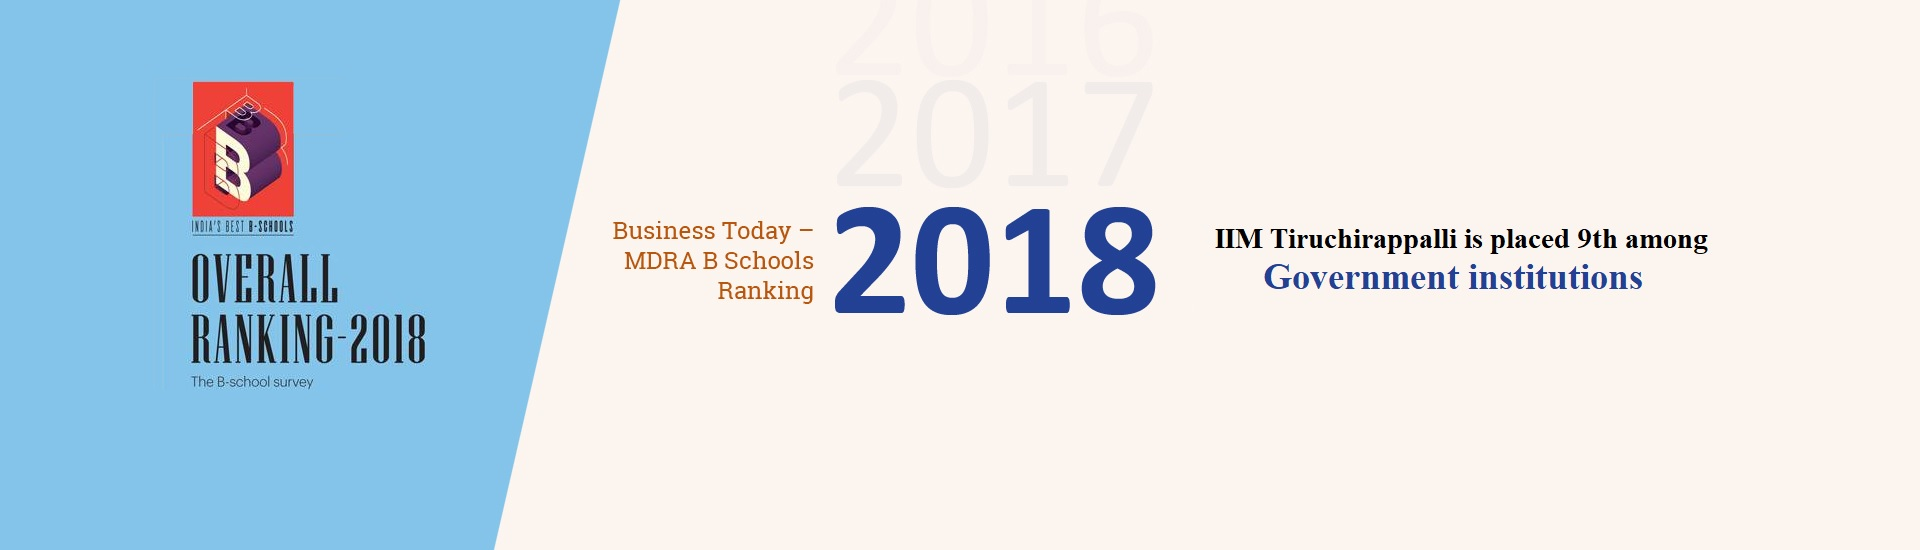 Business Today MDRA B Schools  Ranking 2018